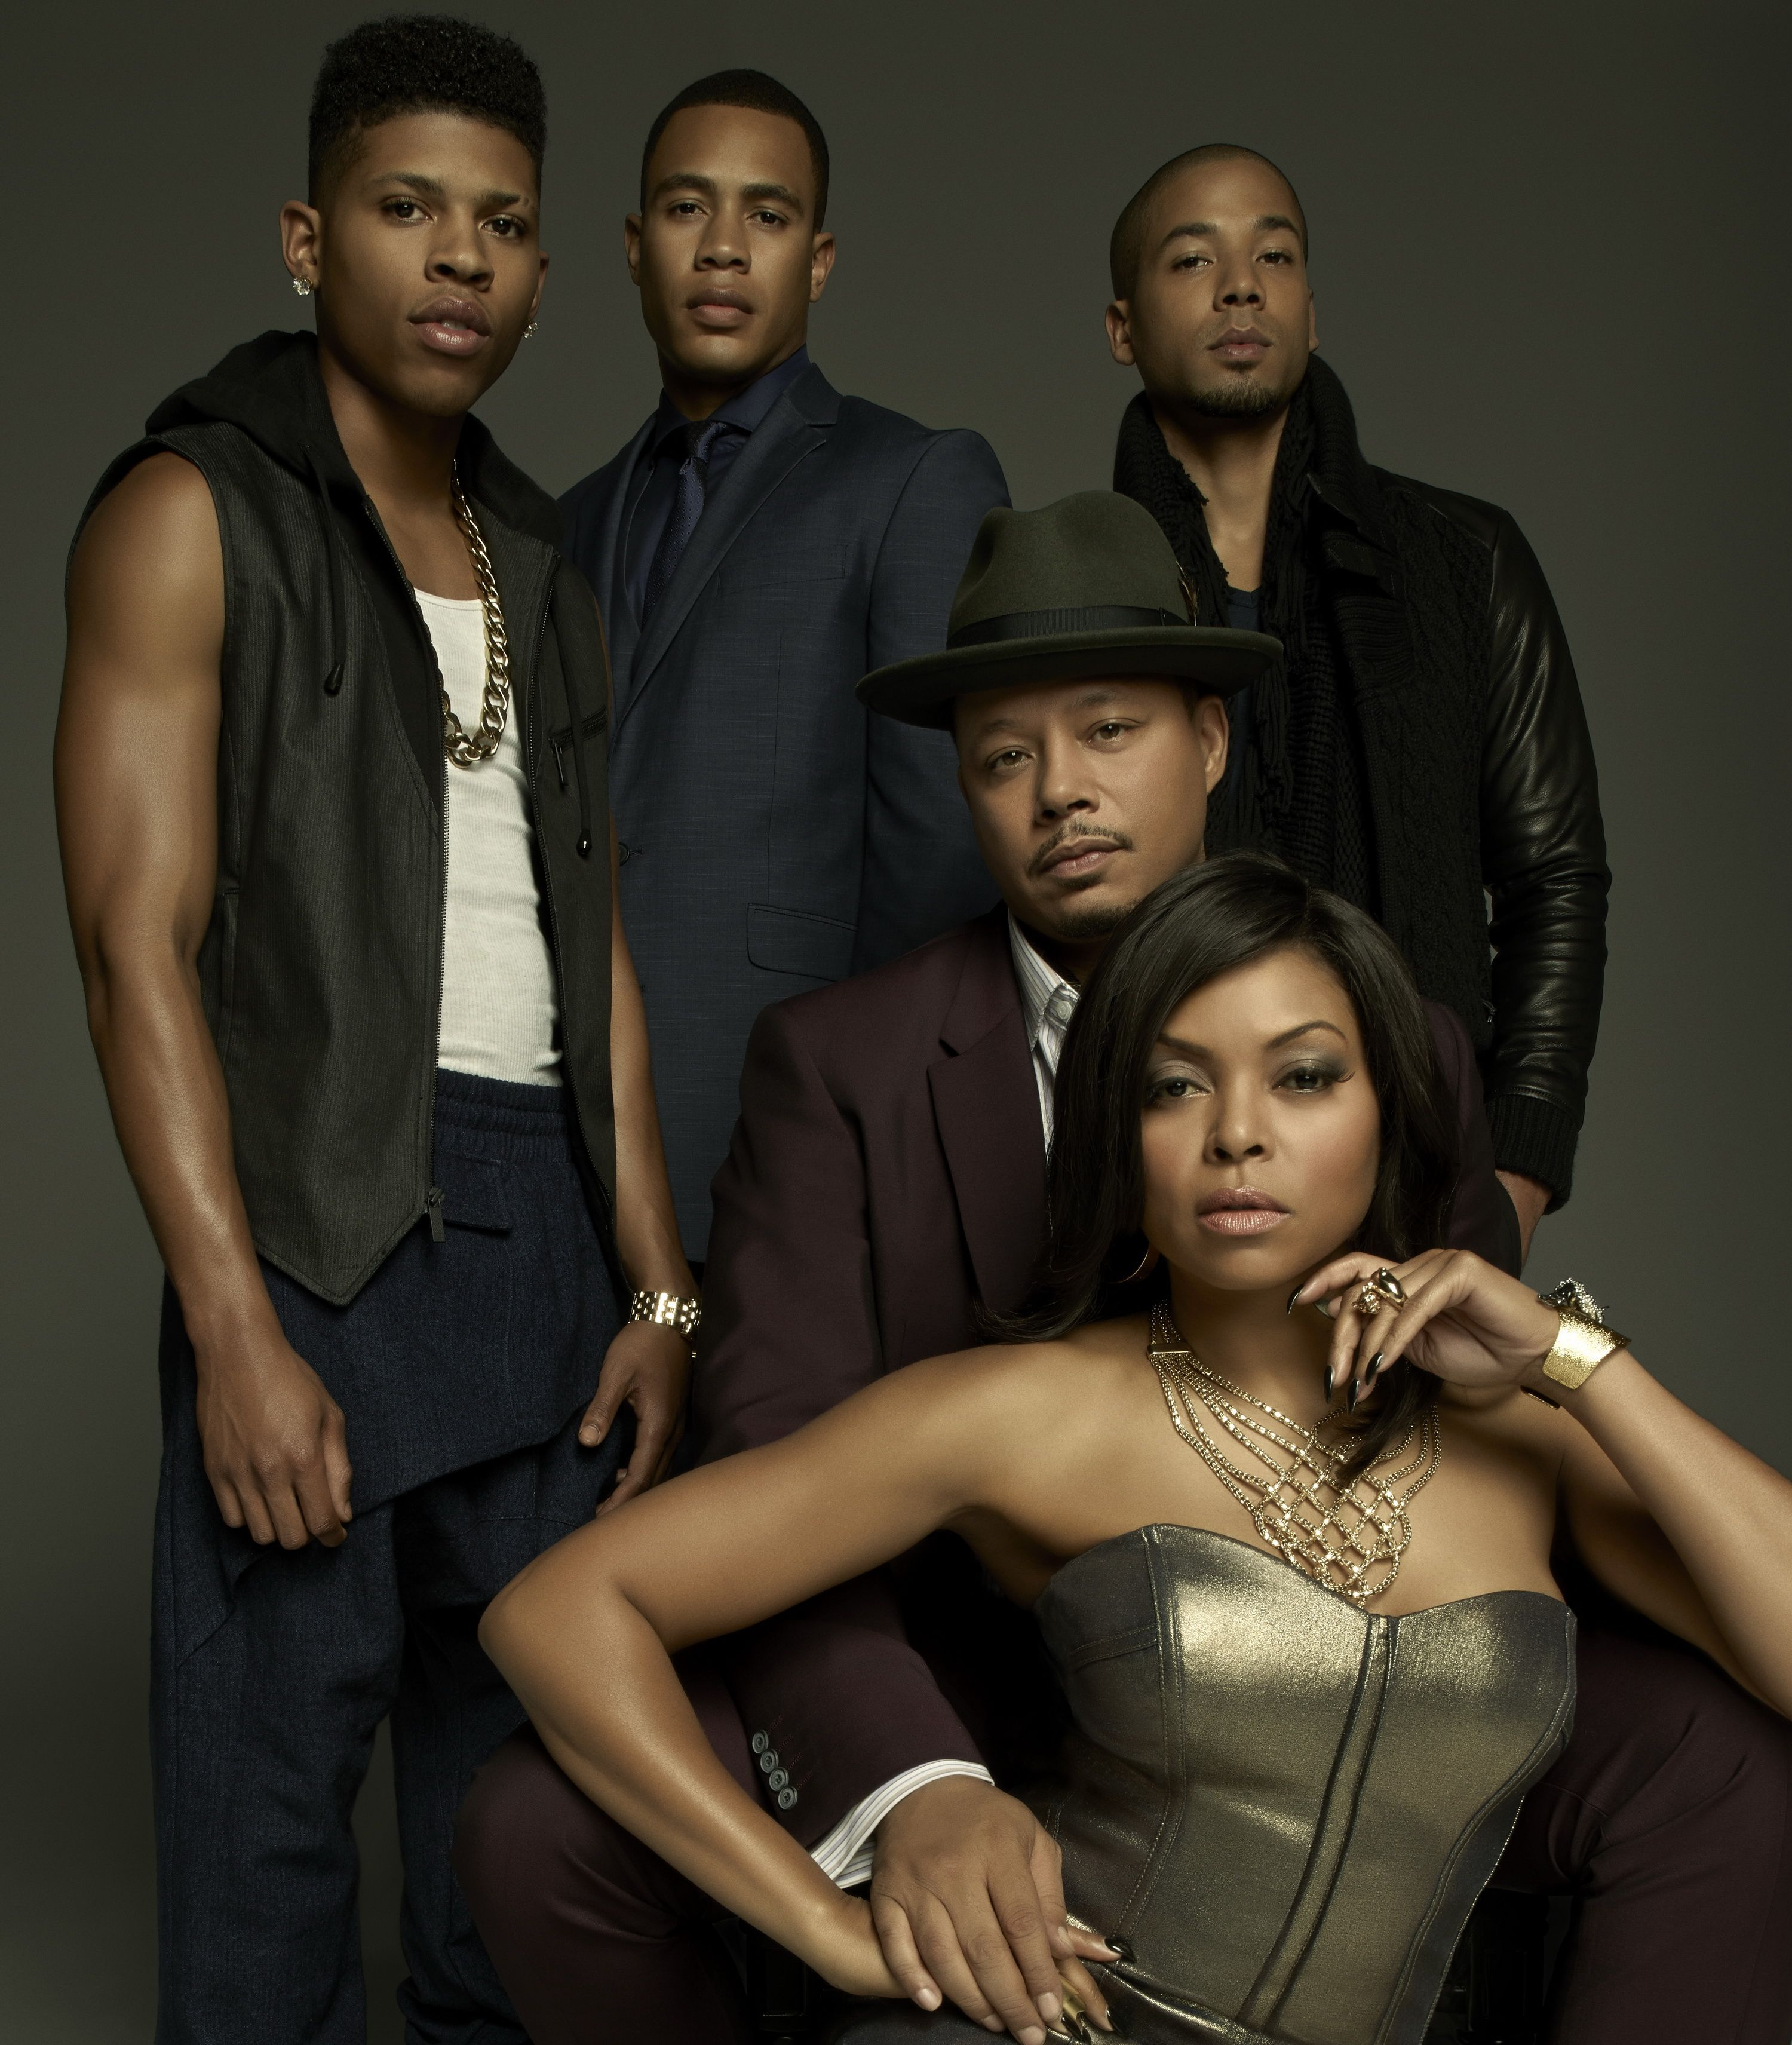 Empire Tv Show Wallpaper Http Wallpapersalbum Com Empire Tv Show Wallpaper Html In 2020 Empire Tv Empire Characters Empire Cast